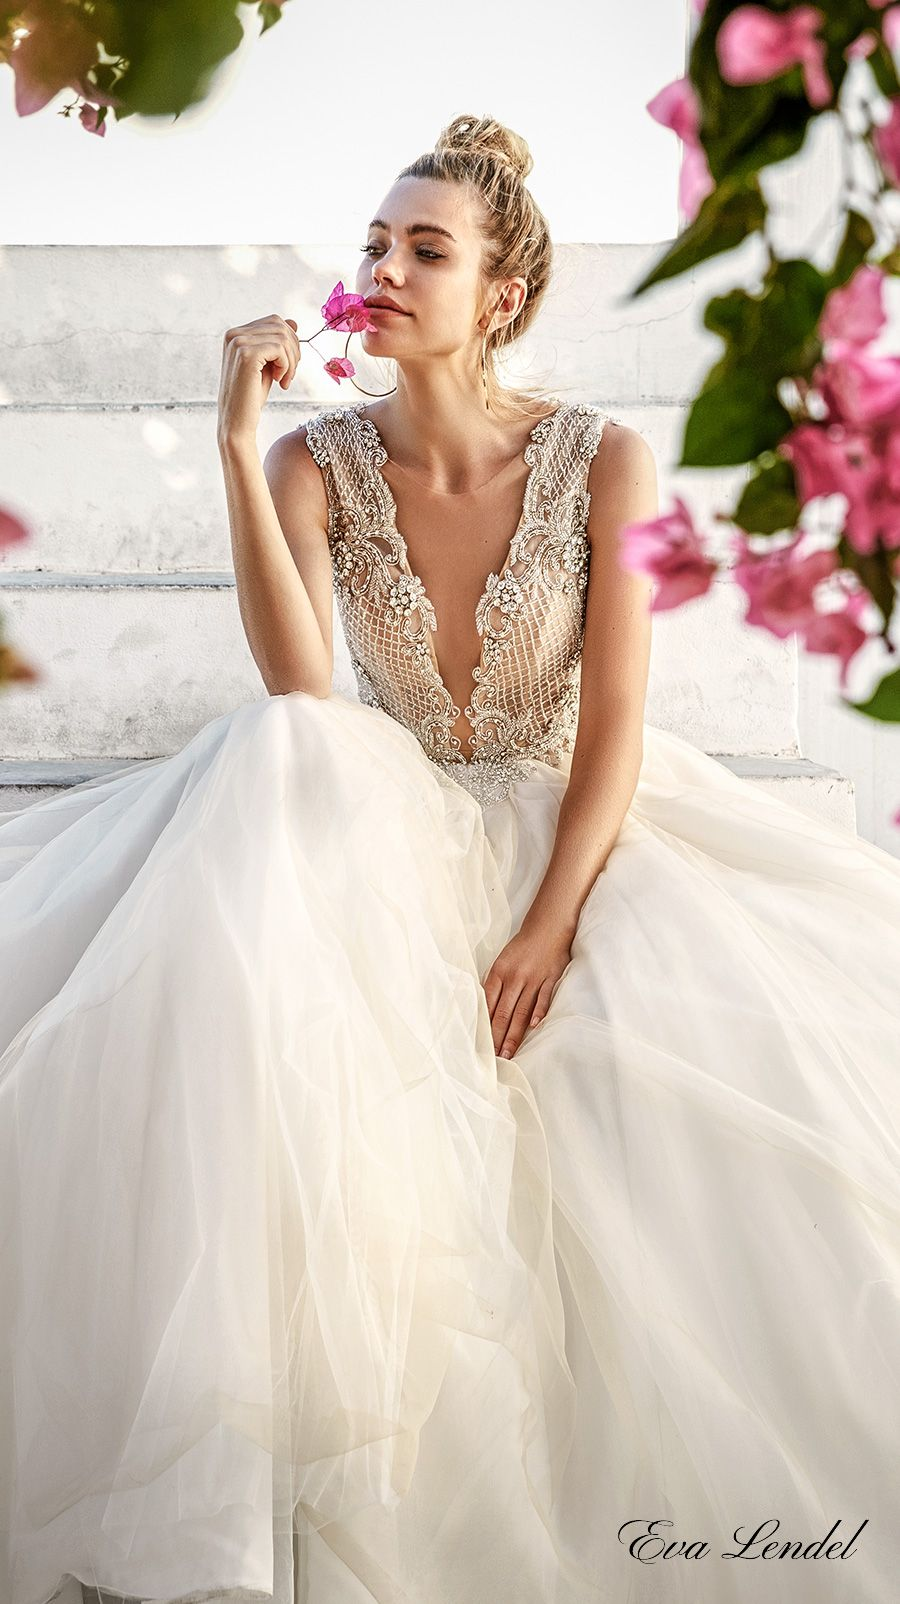 eva lendel 2017 bridal sleeveless deep plunging v neck heavily embellished  bodice romantic sexy ball gown a line wedding dress sheer back chapel train  ... a4124f4bf4dfd